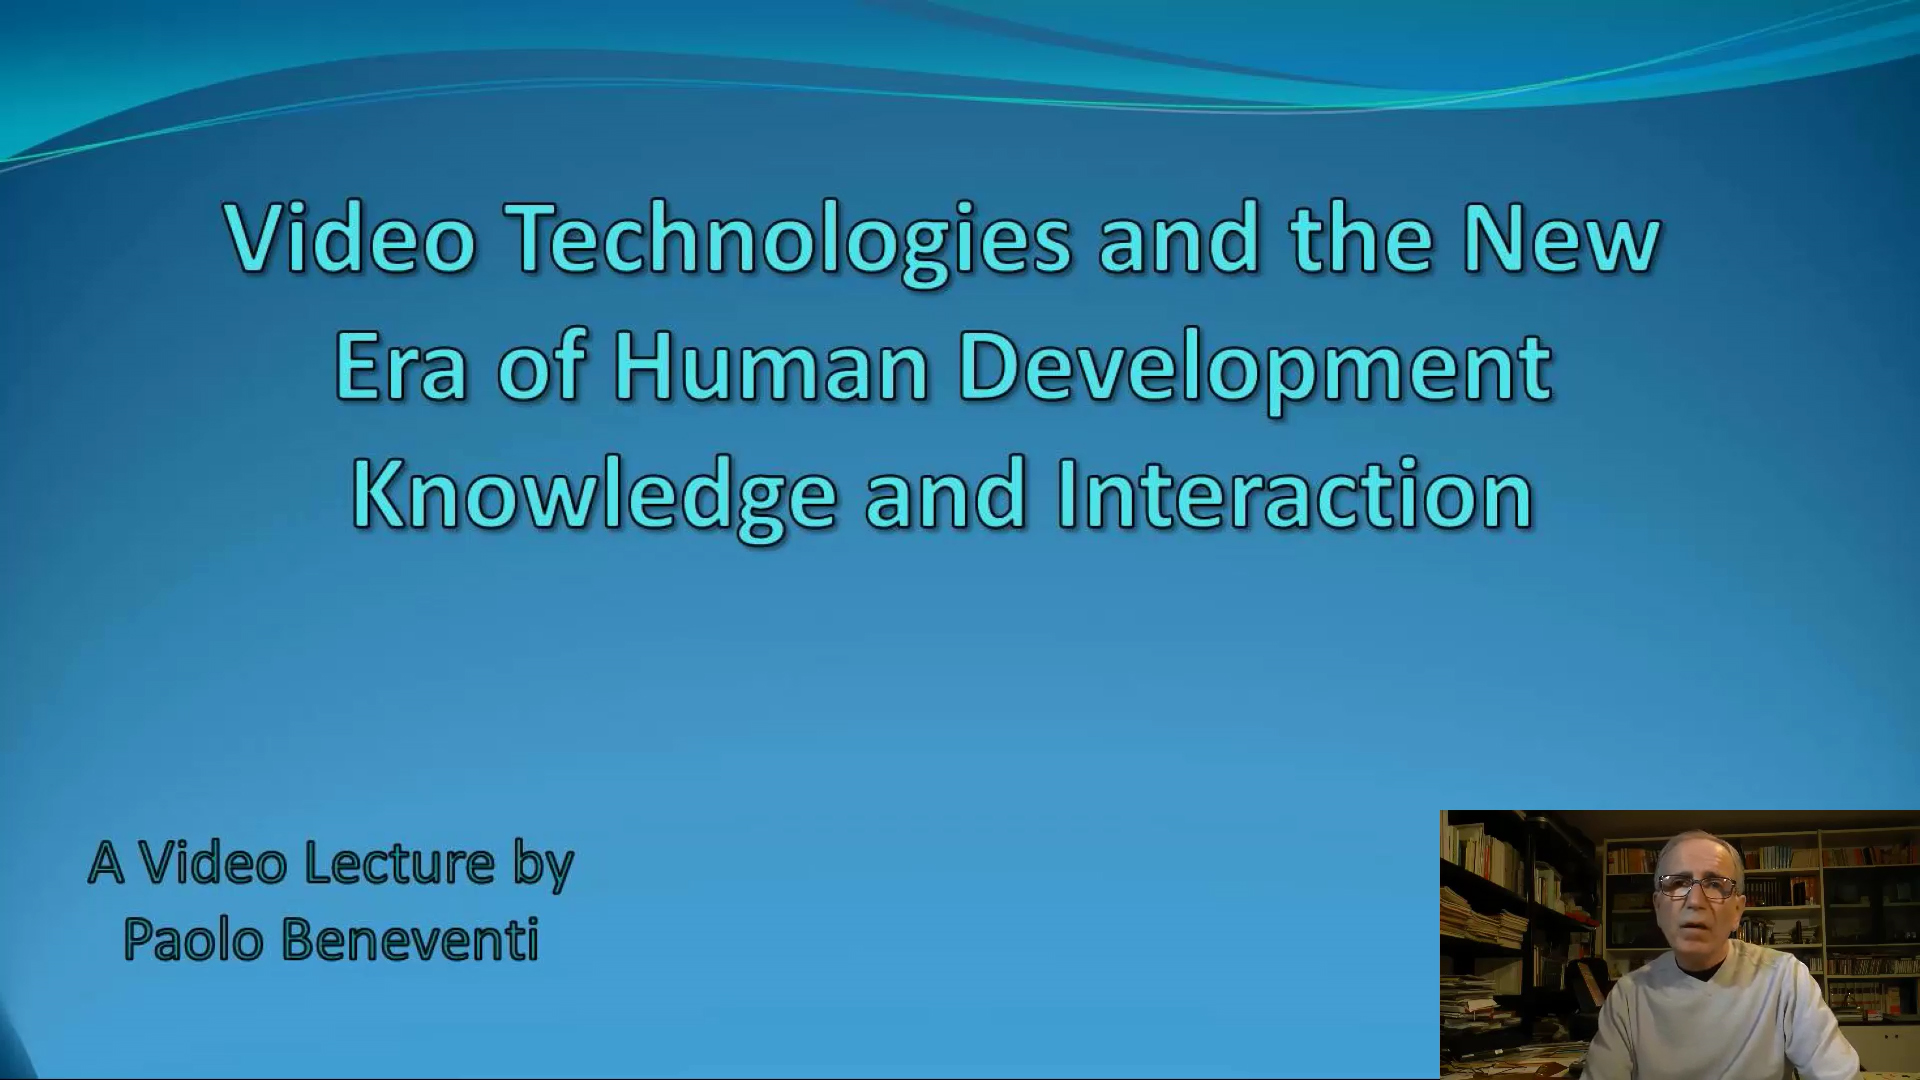 Video Technologies and the New Era of Human Development, Knowledge, and Interaction